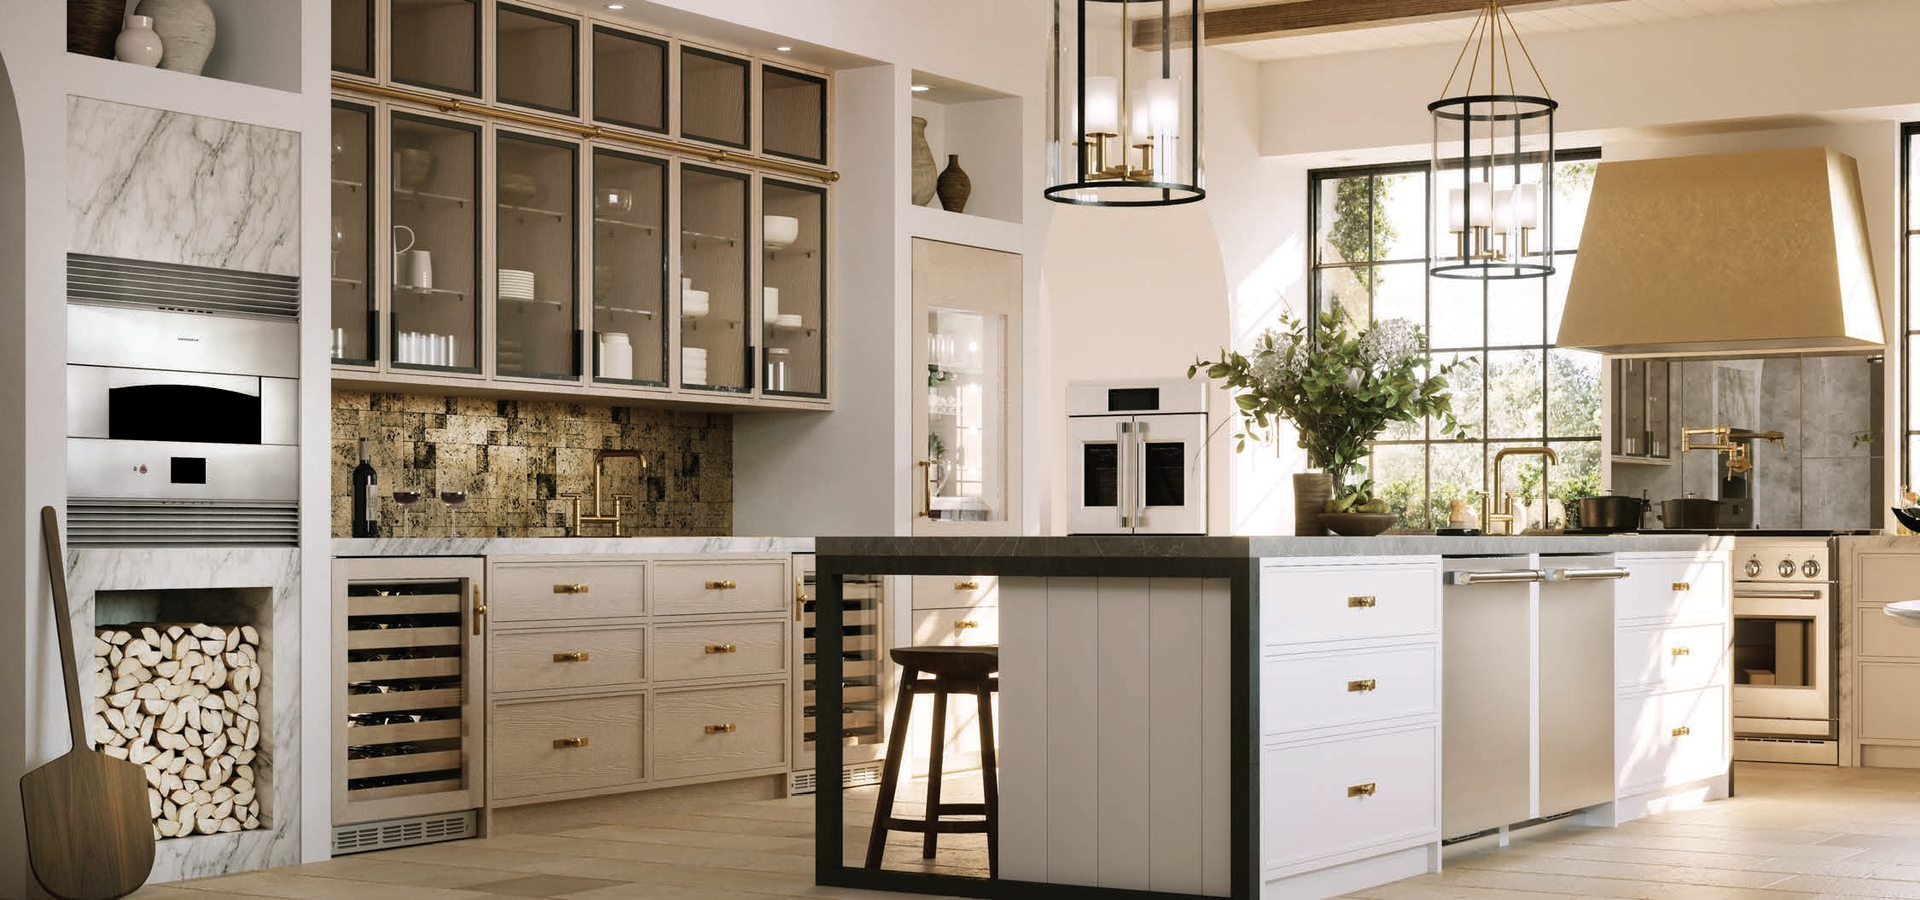 Monogram Statement Kitchen with Brass Finish Hood